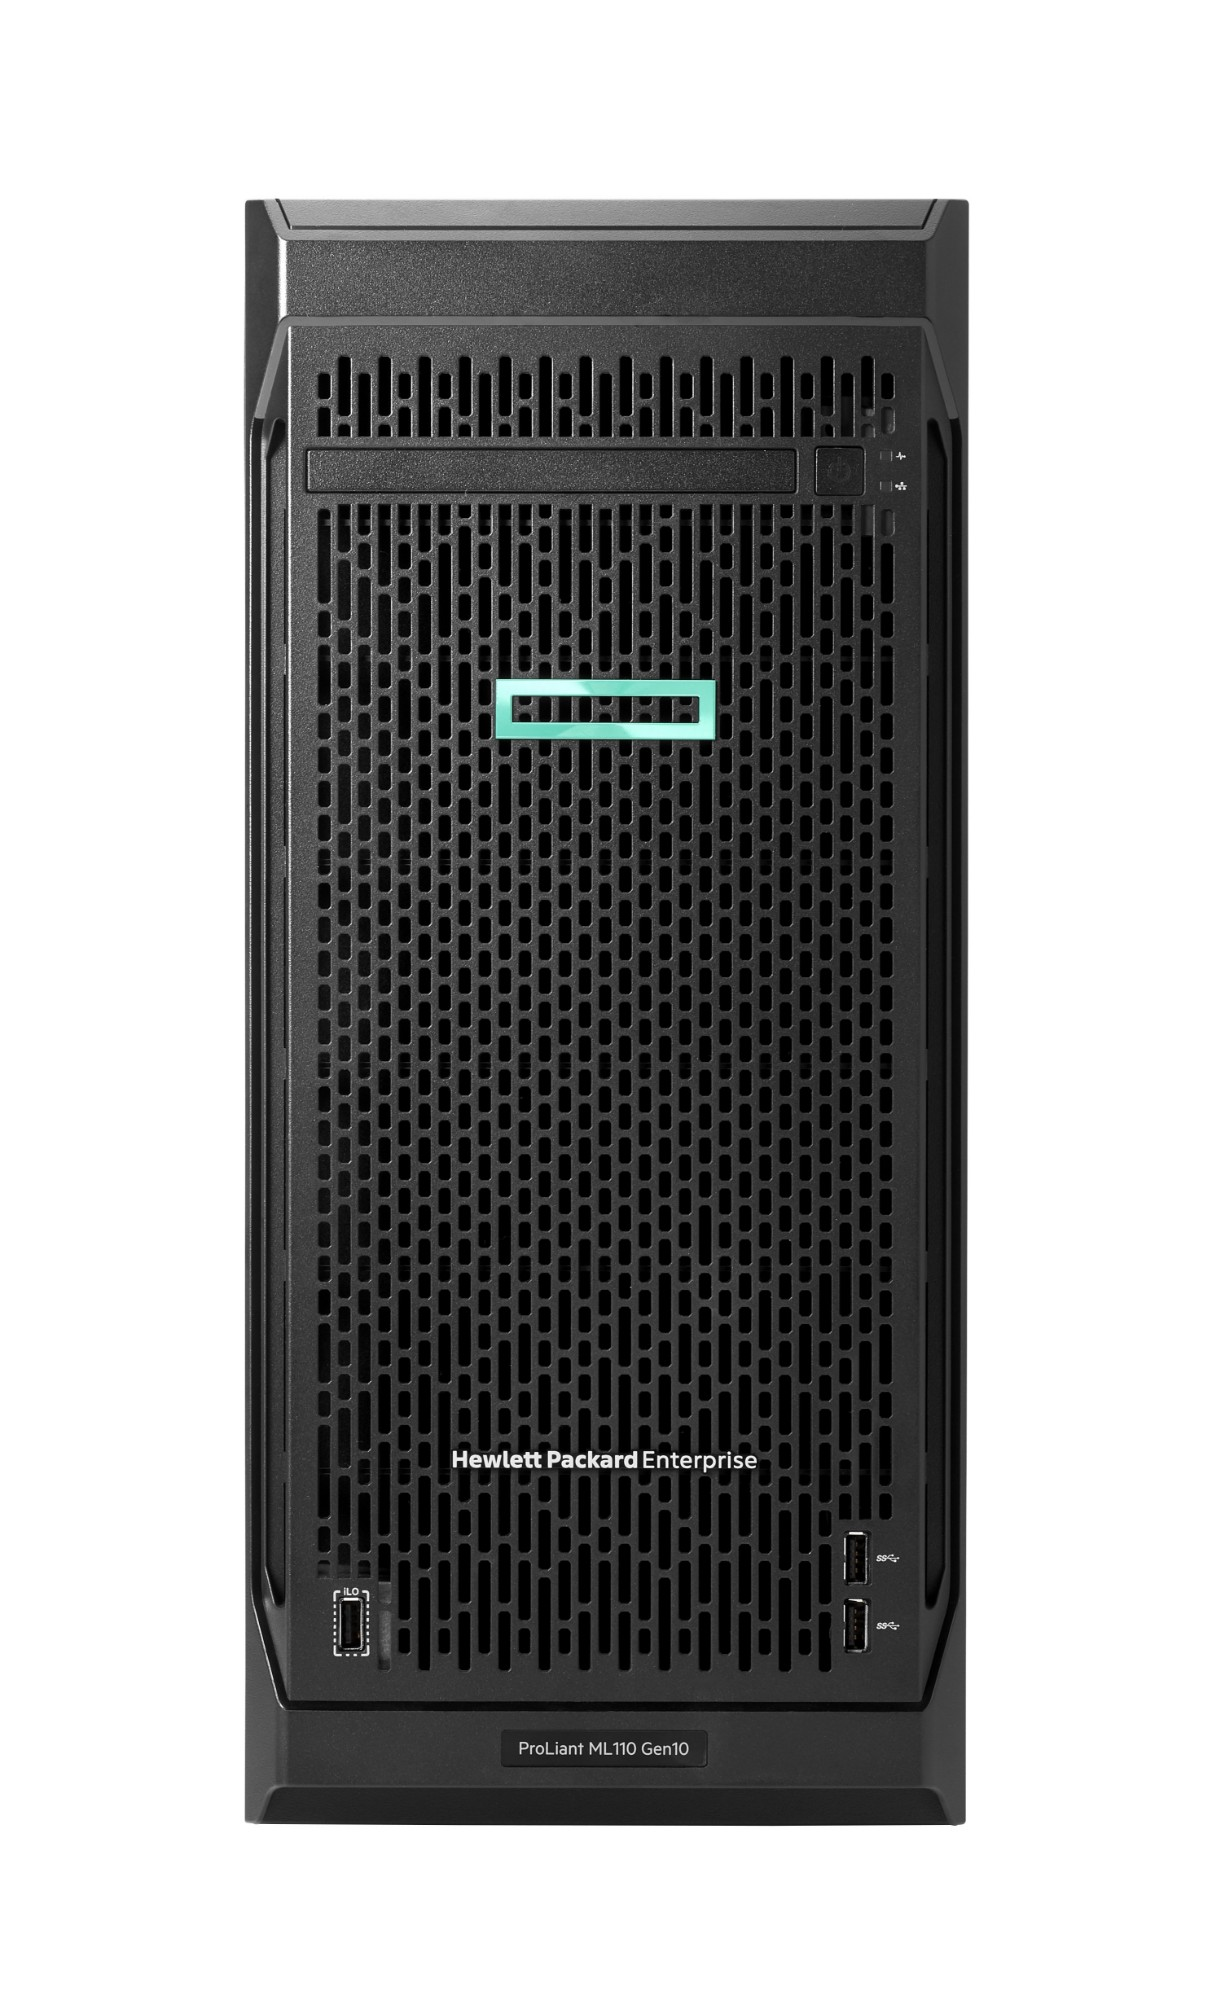 Hewlett Packard Enterprise ProLiant ML110 Gen10 + 16GB RAM + Windows Server 2019 Standard ROK servidor Intel® Xeon® Silver 2,1 GHz DDR4-SDRAM 96 TB Torre (4,5U) 550 W